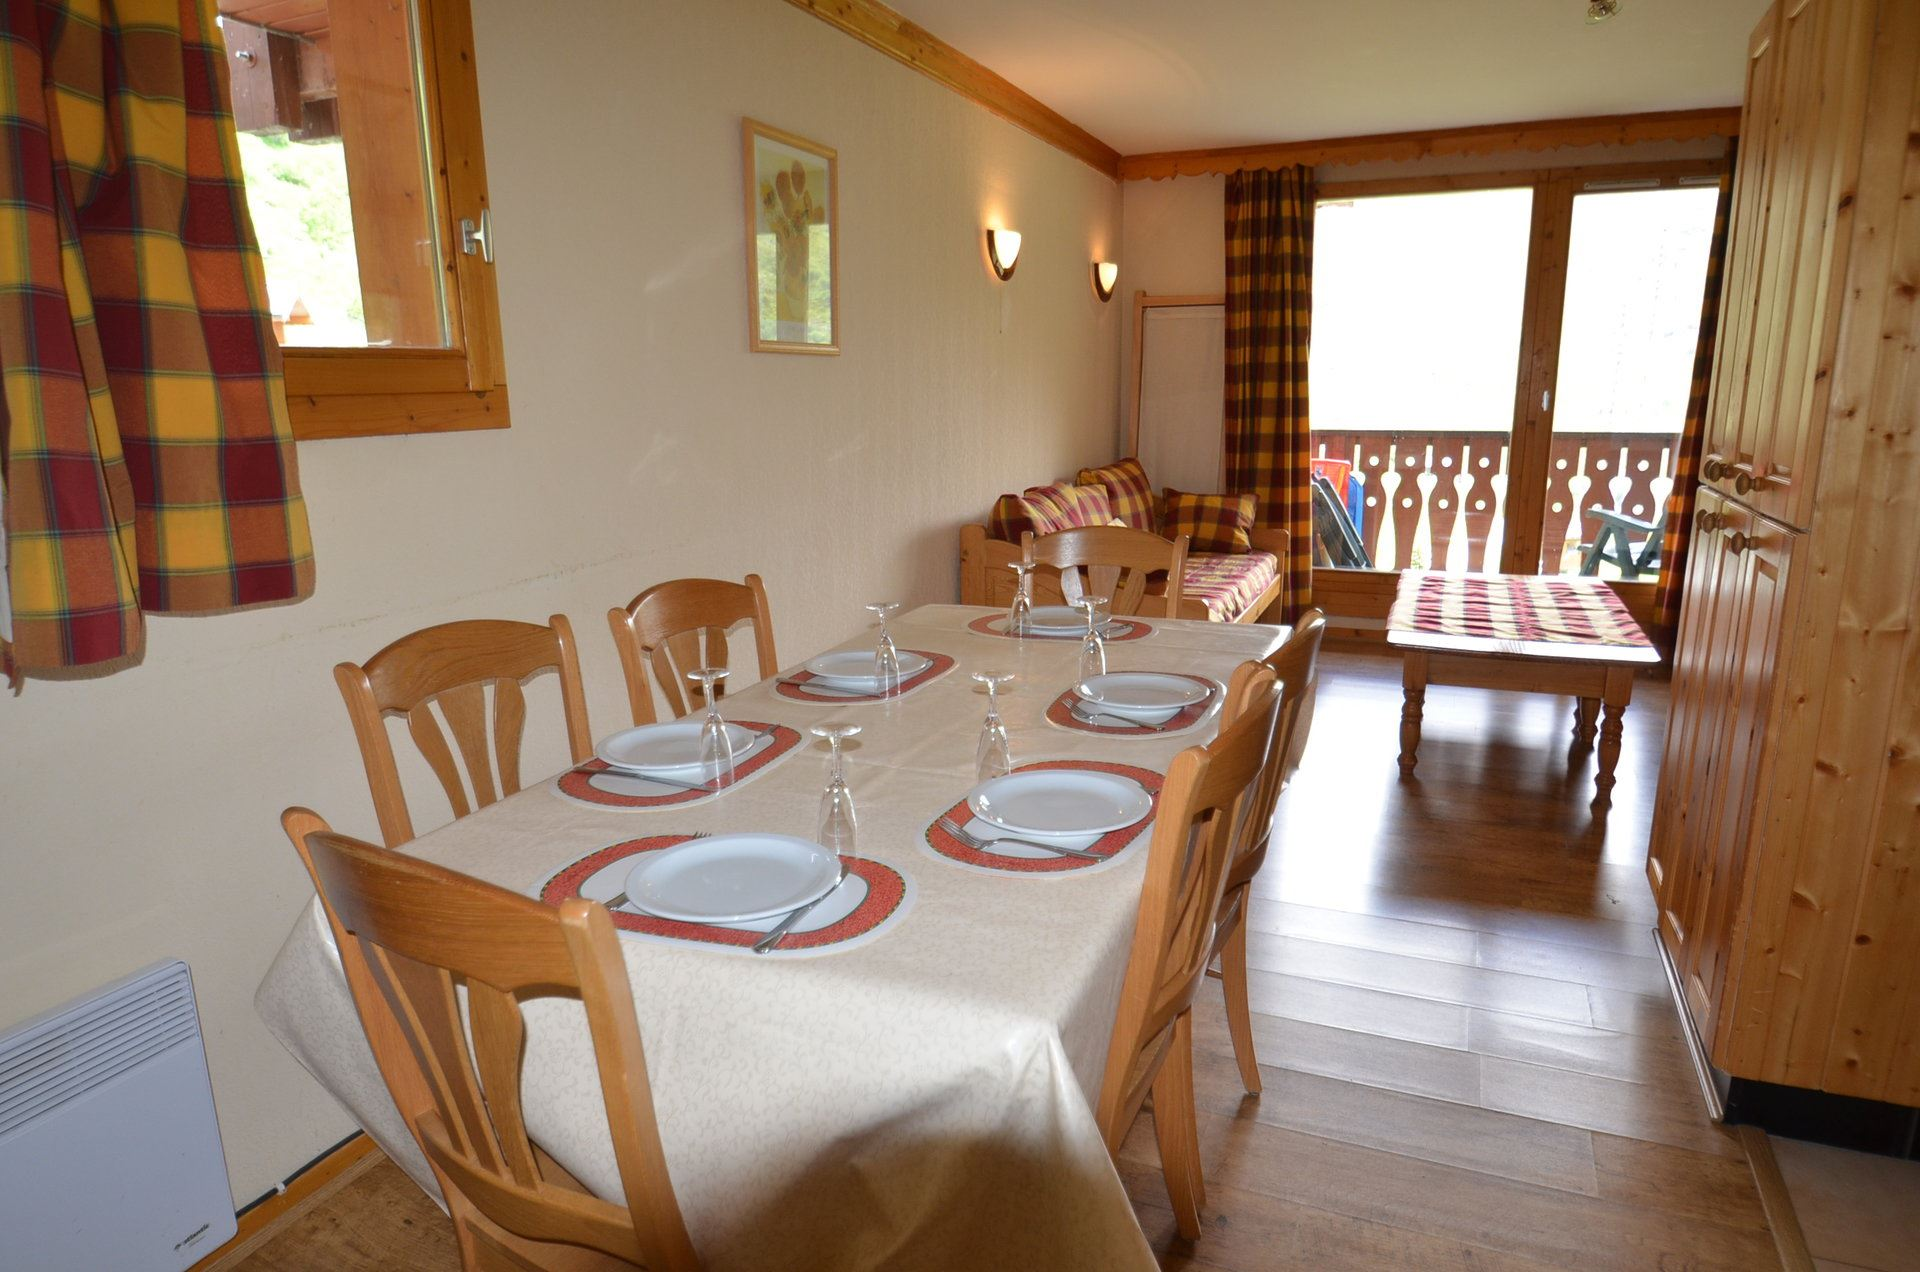 3 Rooms 4/6 Pers ski-in ski-out / VALMONT 1117